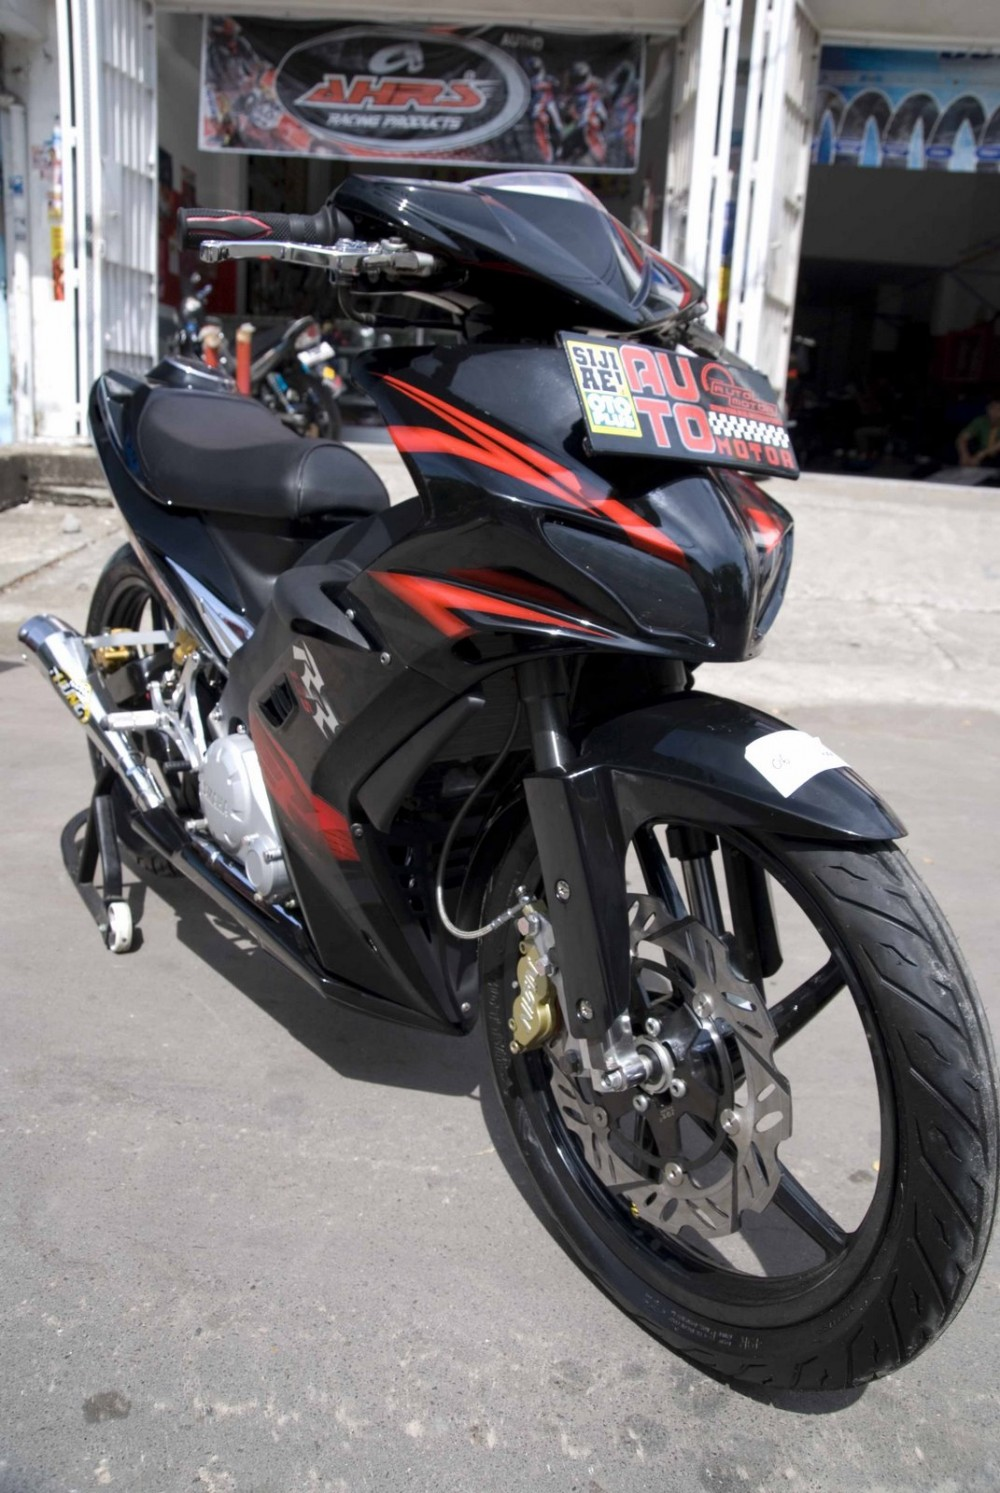 Exciter phong cach Sportbike ben Malai - 5